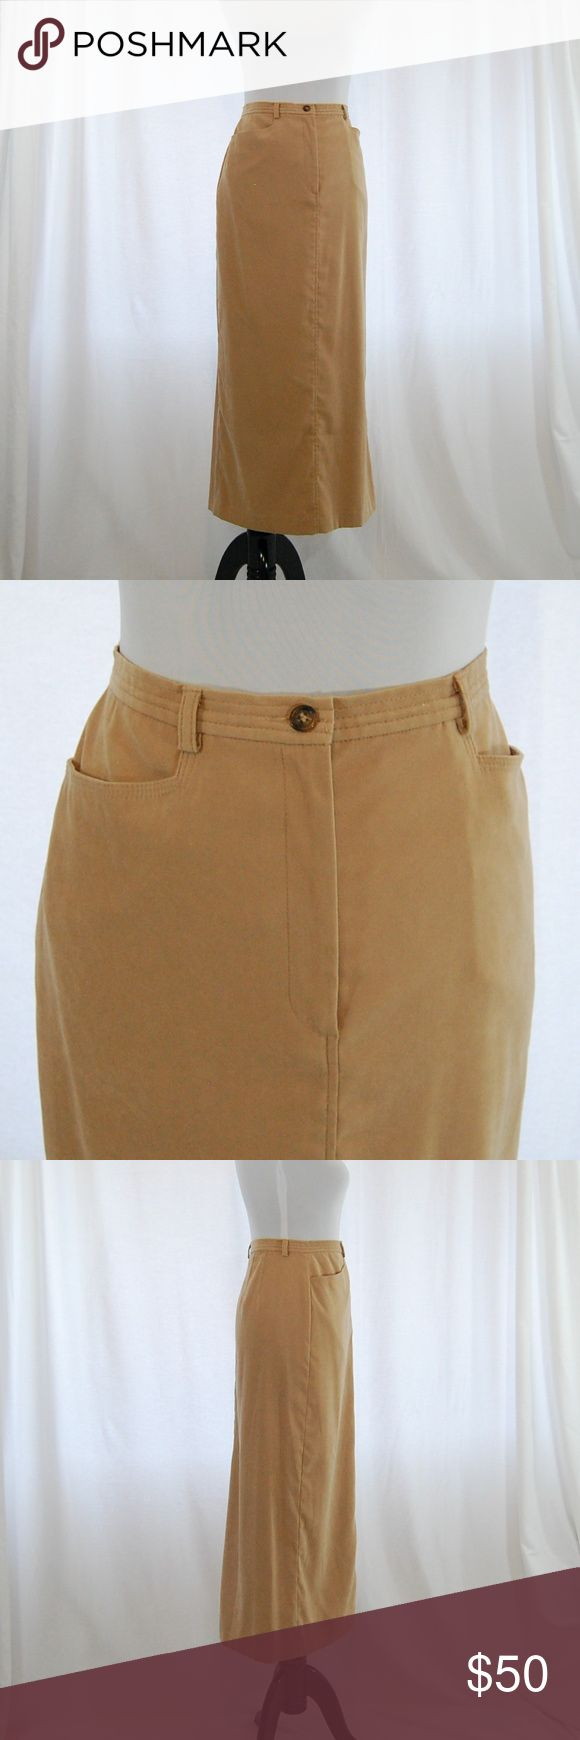 "🆕 Talbots Classic Khaki/Tan Maxi Skirt Long skirt (midi or maxi - depending on your height - see measurements)  Khaki / tan color Center button and zip at front High back slit  Excellent condition with little to no wear.  Belt loops  Suede-feel material 96% polyester / 4% spandex  Approximate measurements (taken flat): Waist = 15.5"" Hip = 21"" Length = 37"" Slit = 17""  <CT21> Talbots Skirts Maxi"